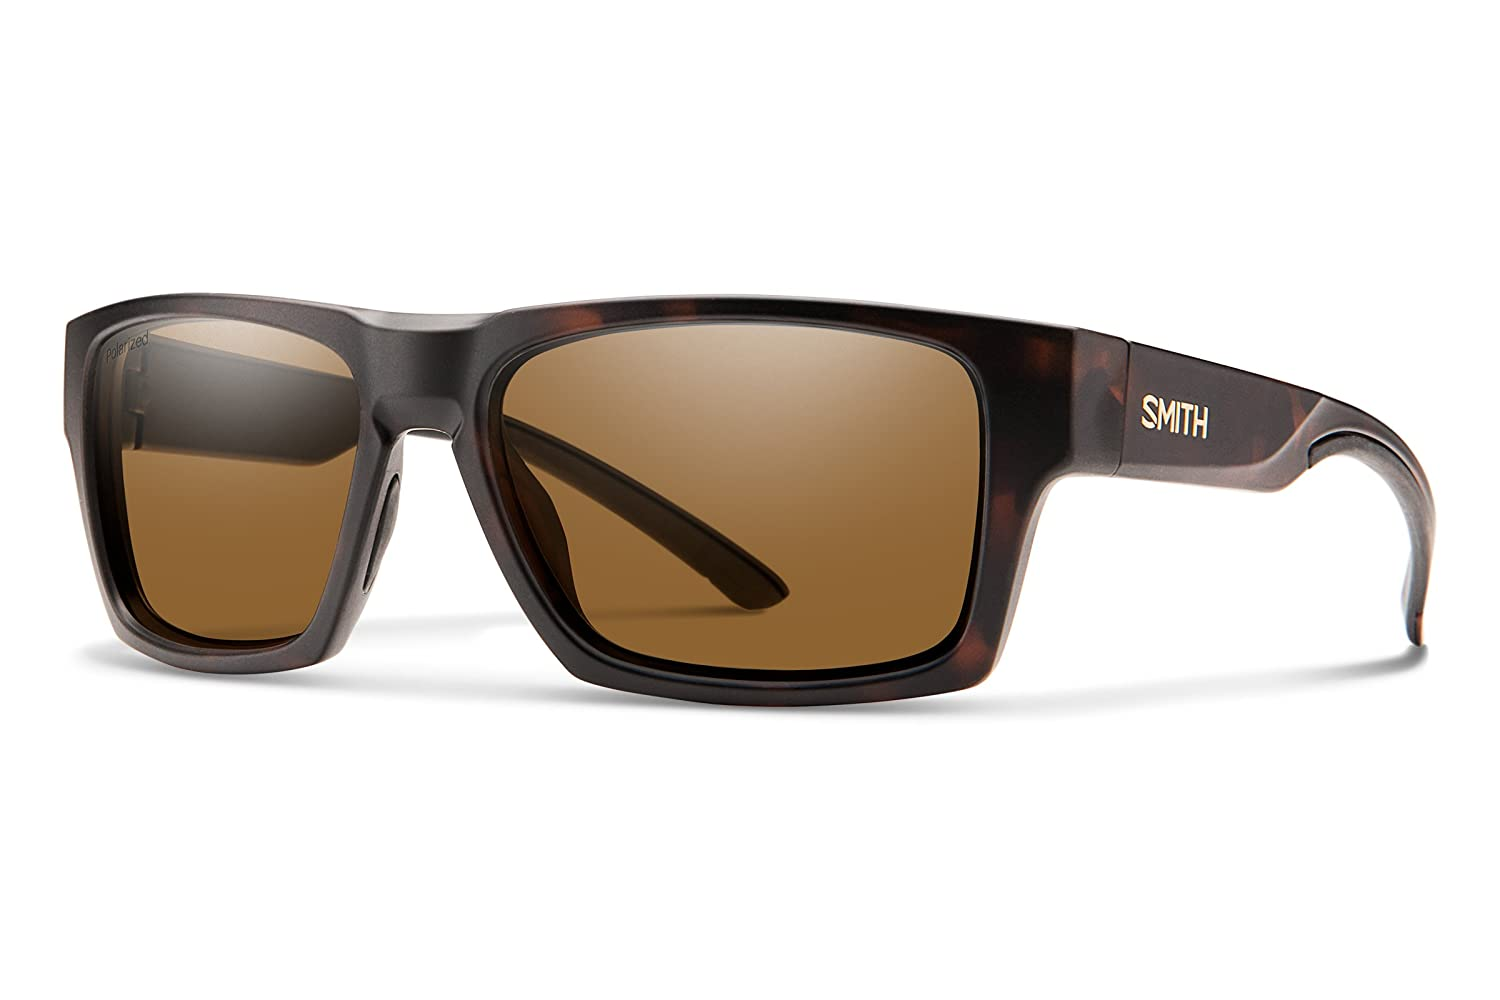 Smith Outlier 2 Matte Tortoise Sunglasses w/Polarized Brown